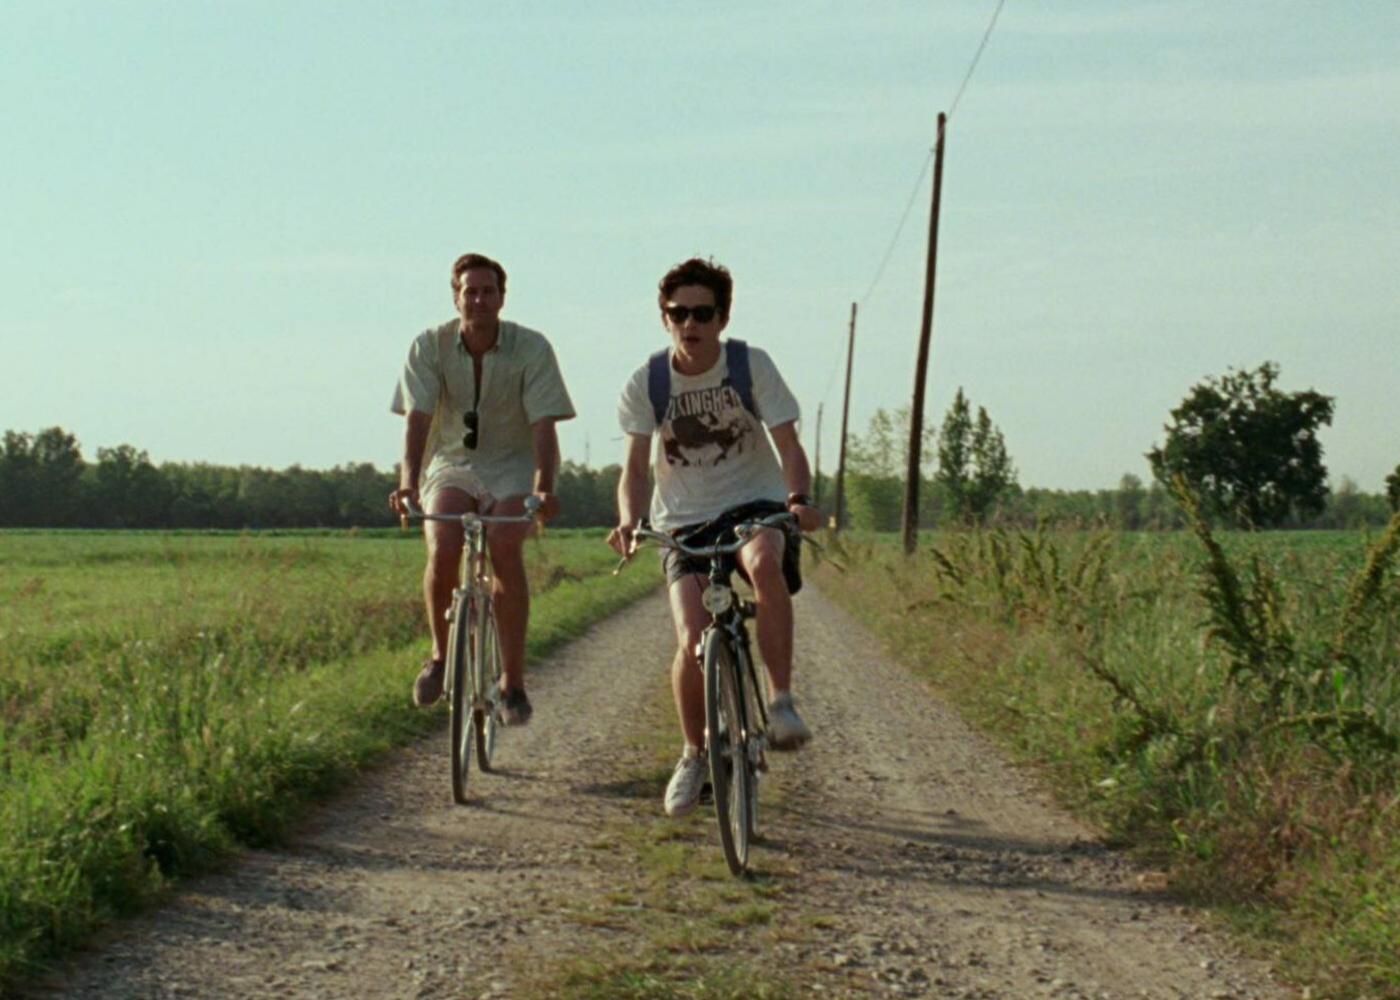 Call Me By Your Name LGBTQ film